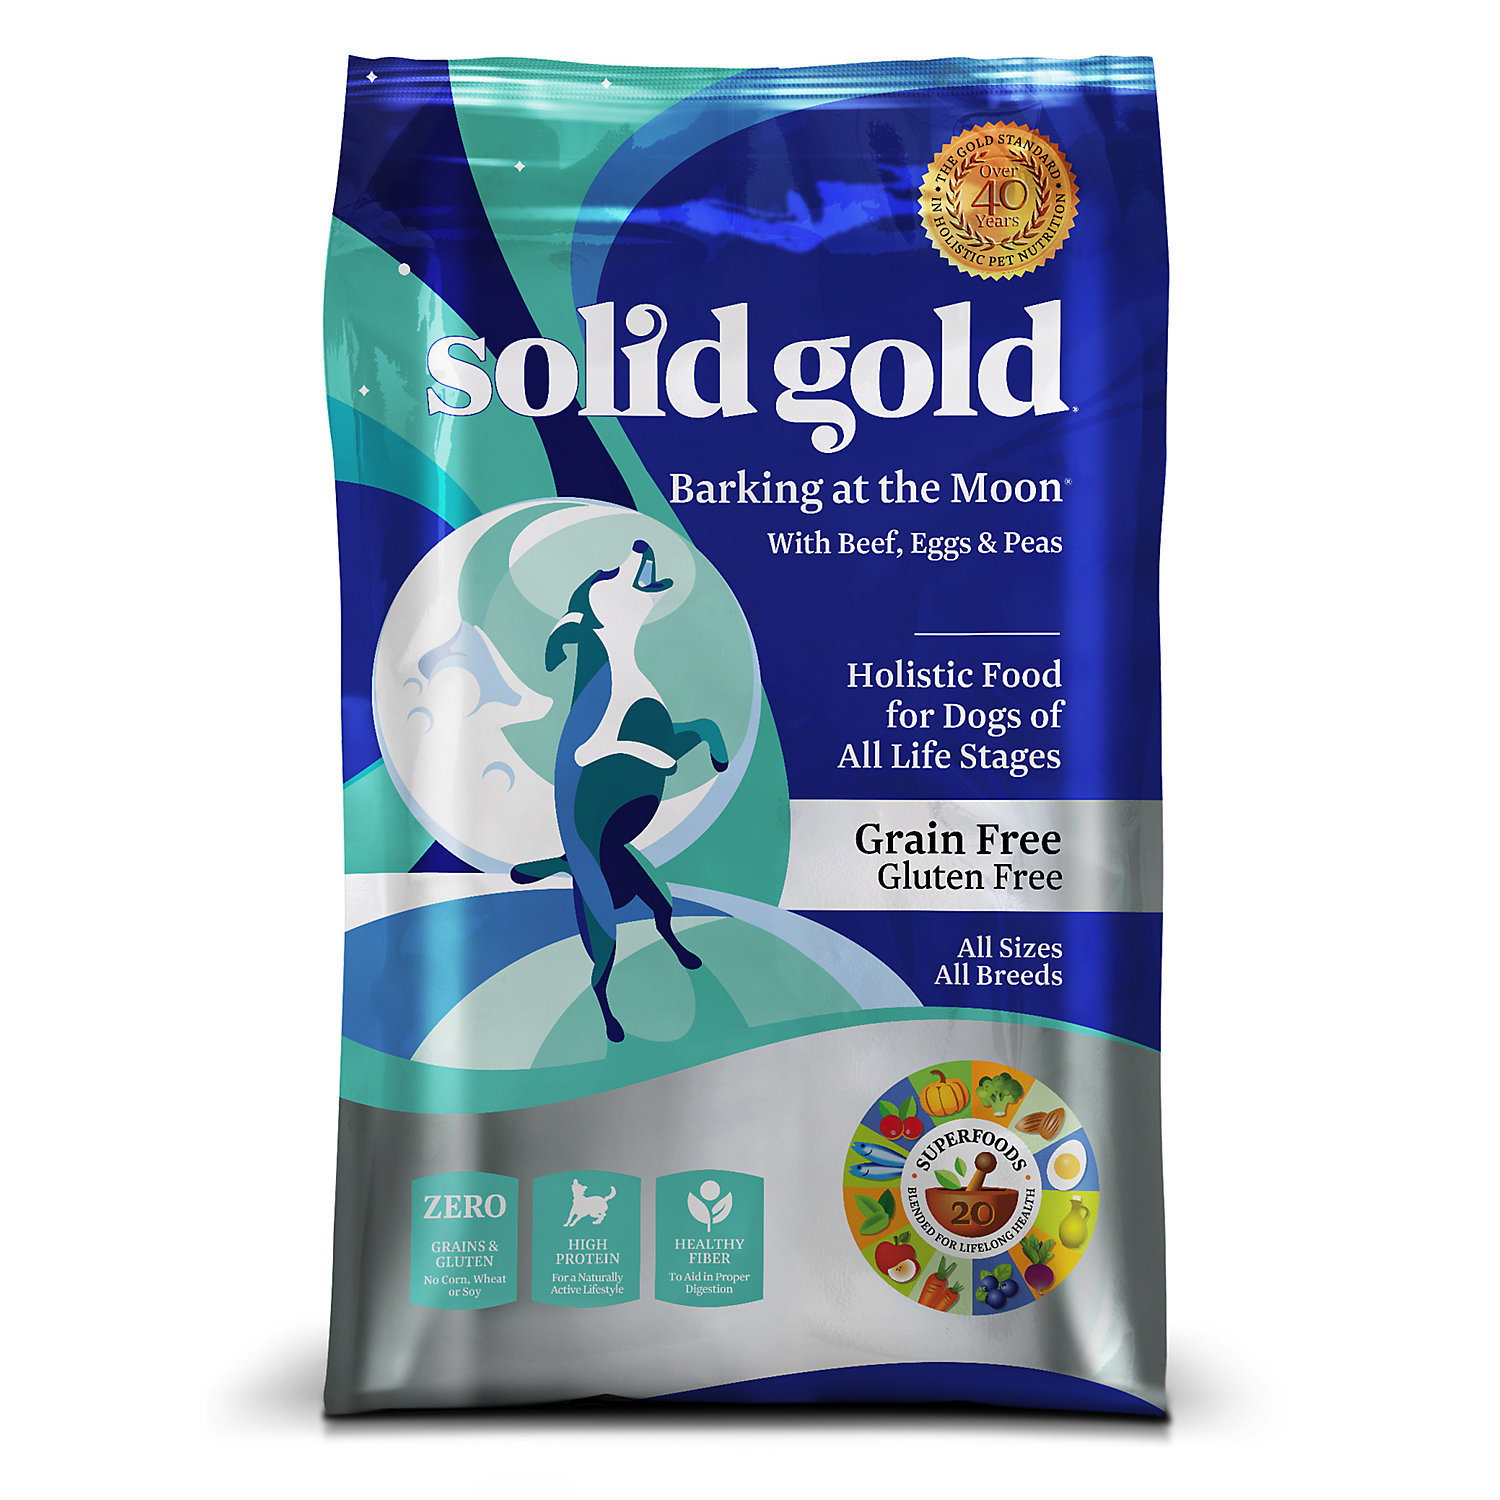 Solid Gold Barkins at the Moon Beef, Eggs, Peas Grain Free Dry Dog Food 4 lbs (9/18) (A.G3)